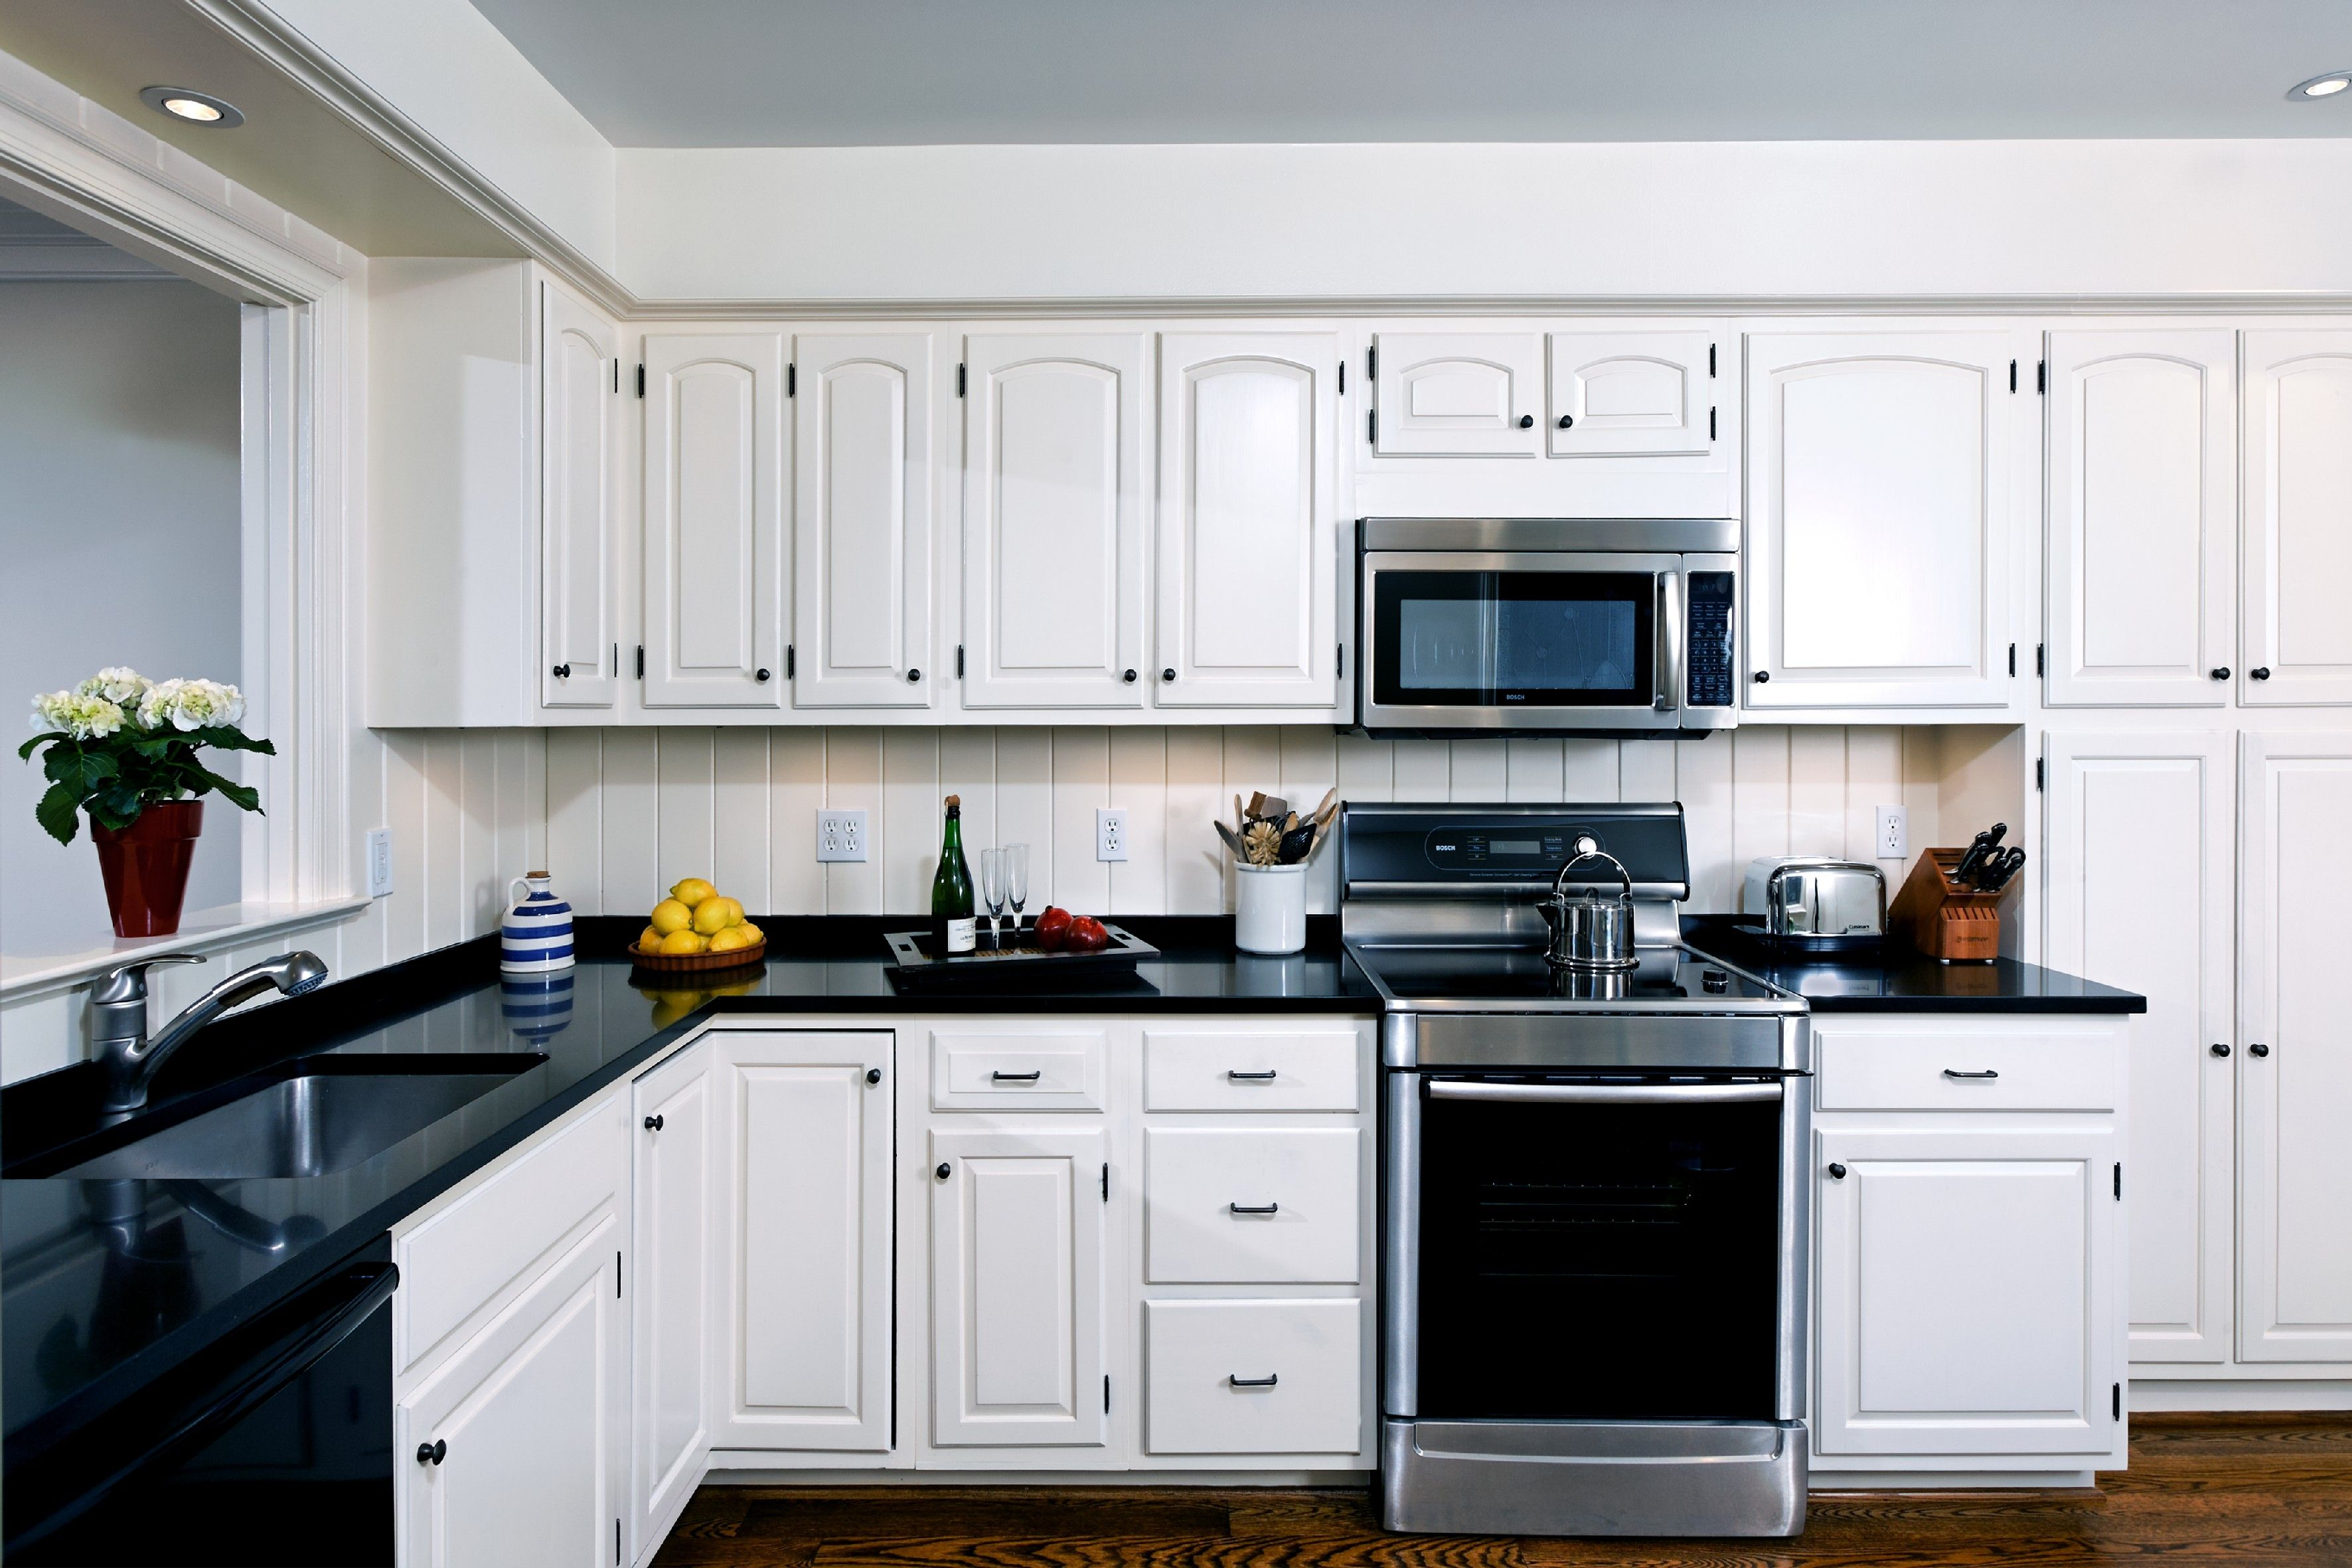 3 great home remodeling jobs to cure the winter blues | washington